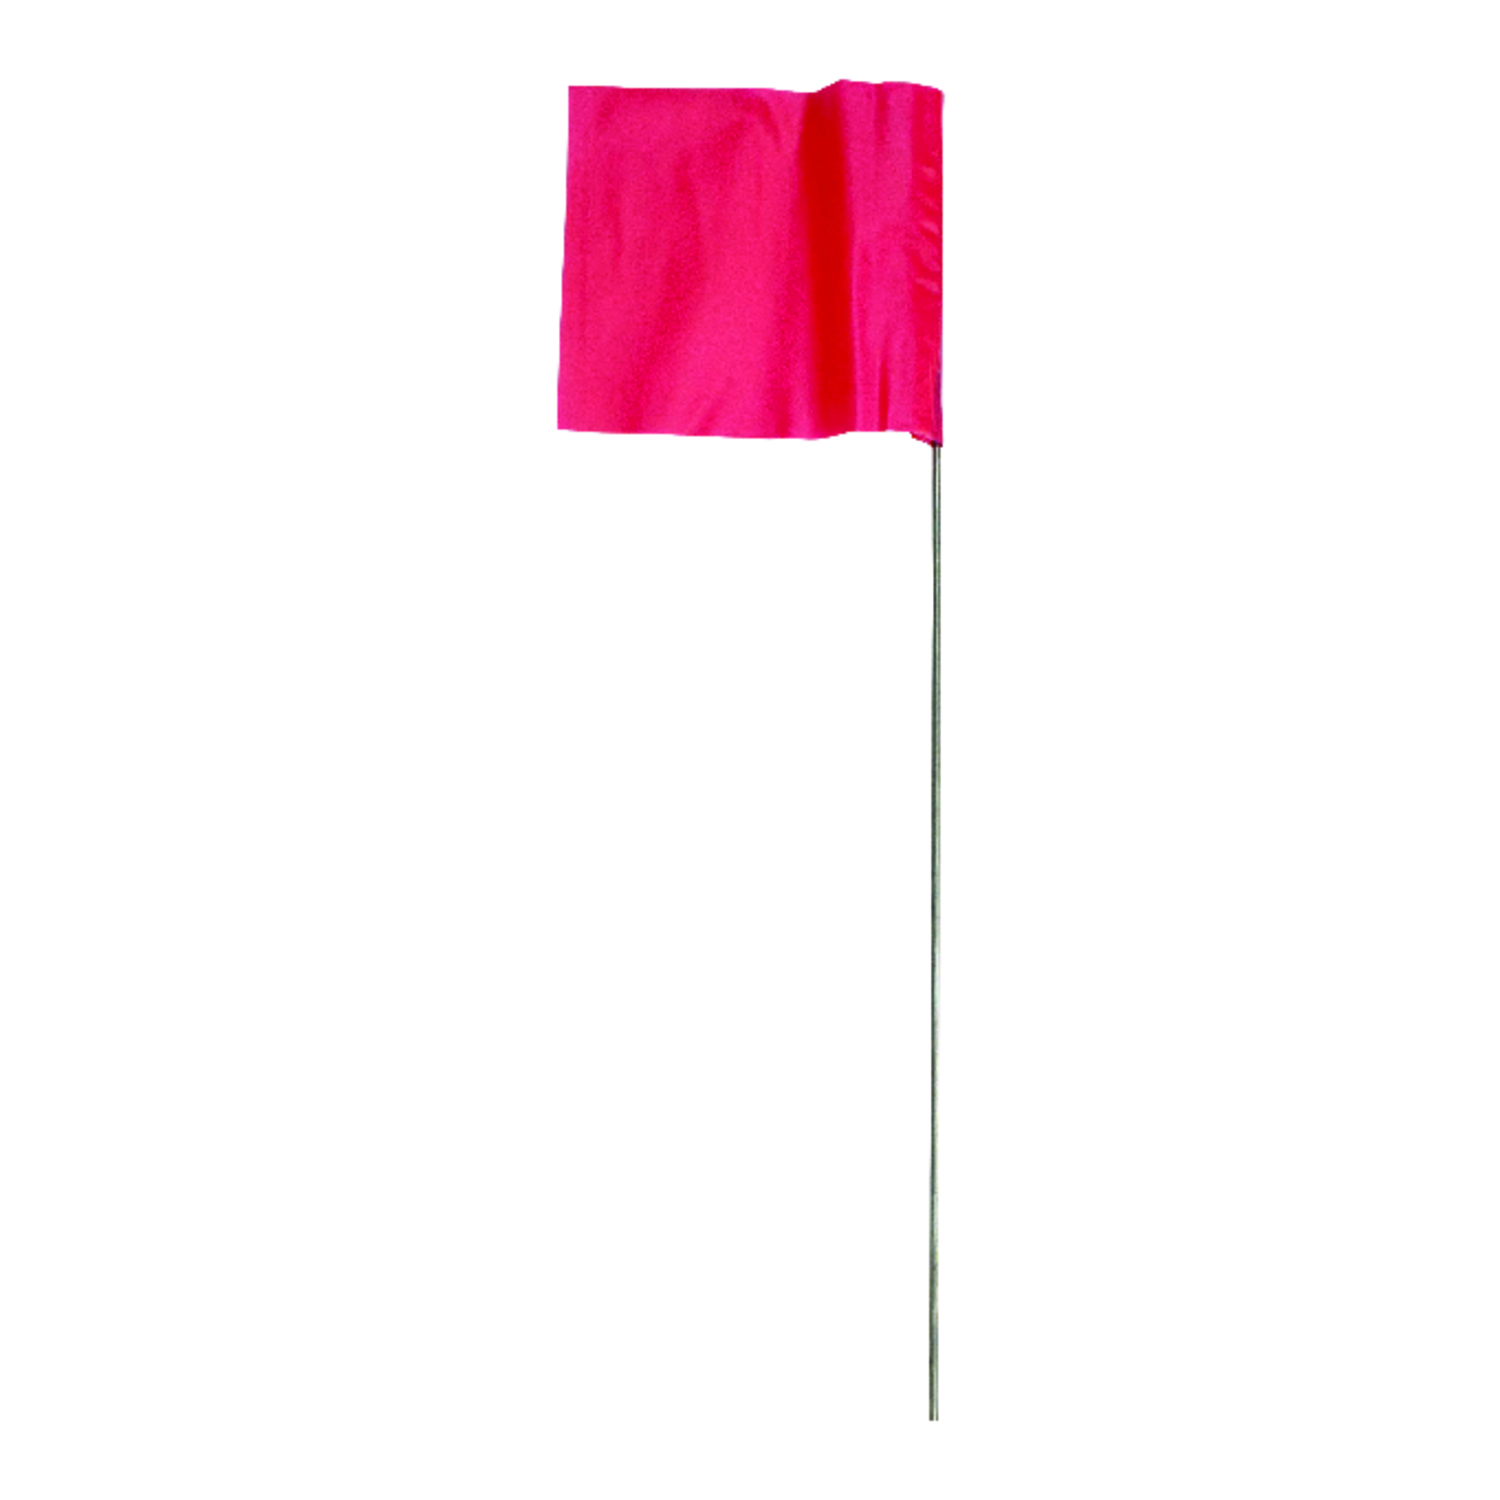 C.H. Hanson  15 in. Marking Flags  Red  100 each Polyvinyl